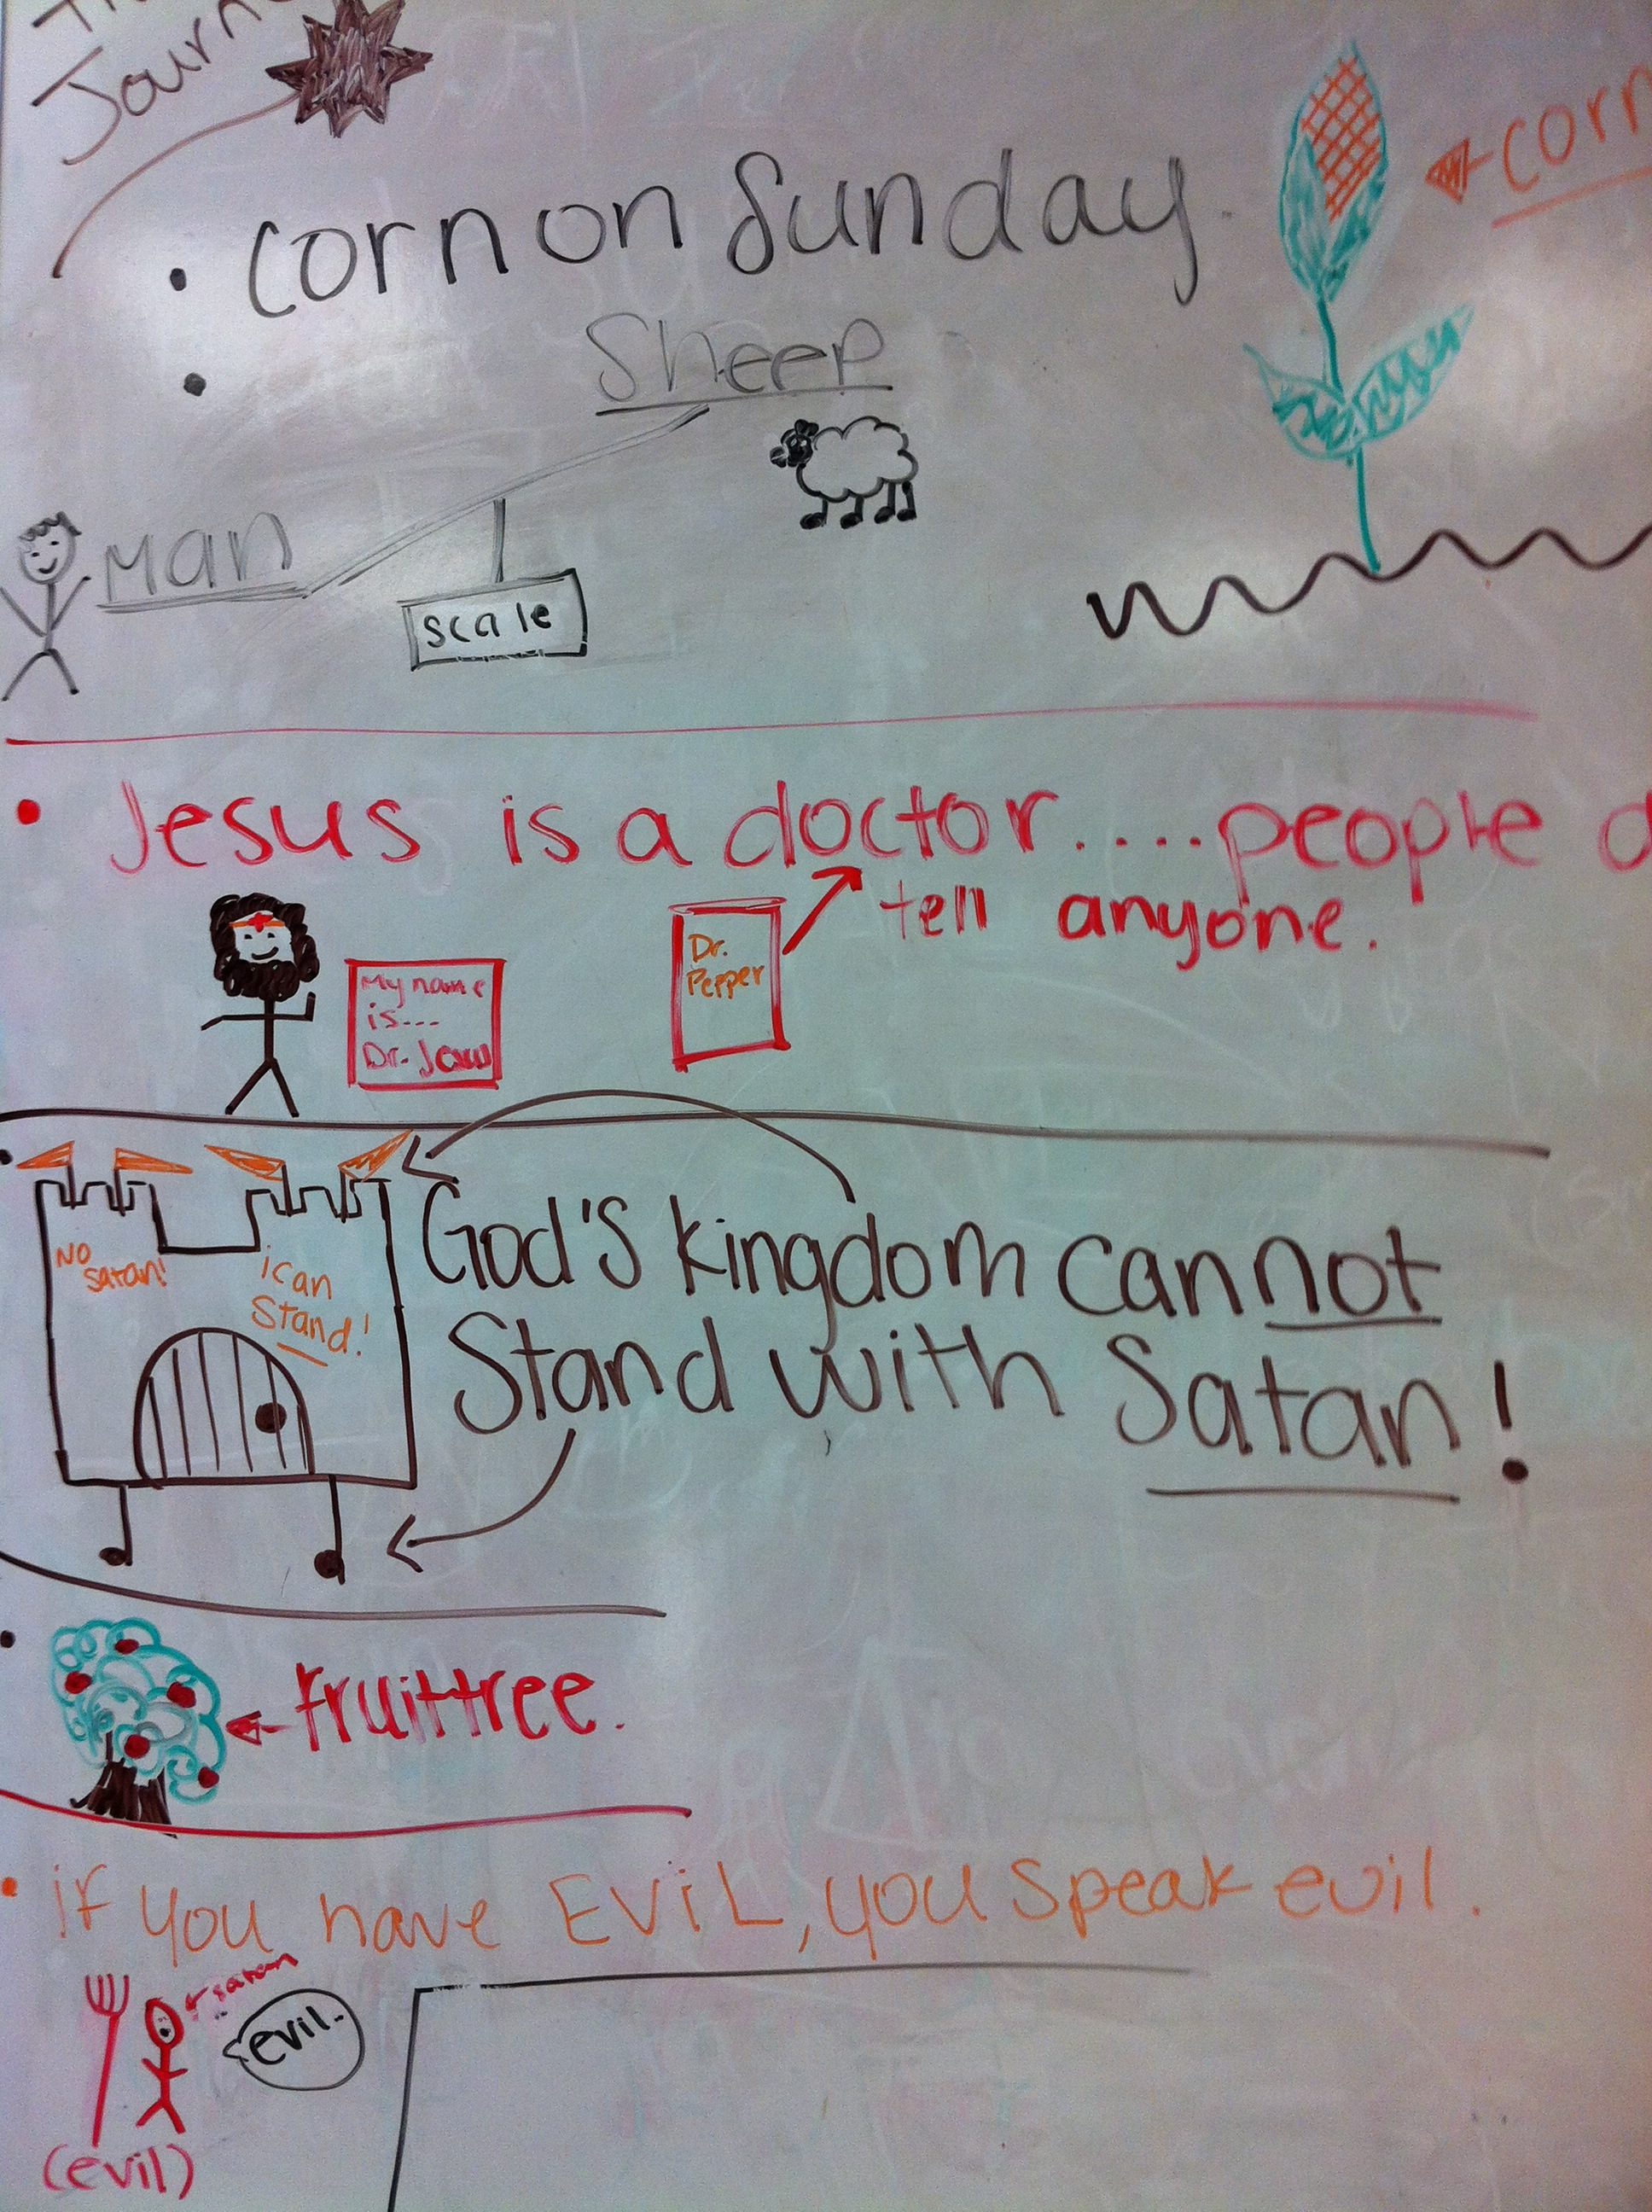 Youth Worker Circuit : Whiteboard in Ministry